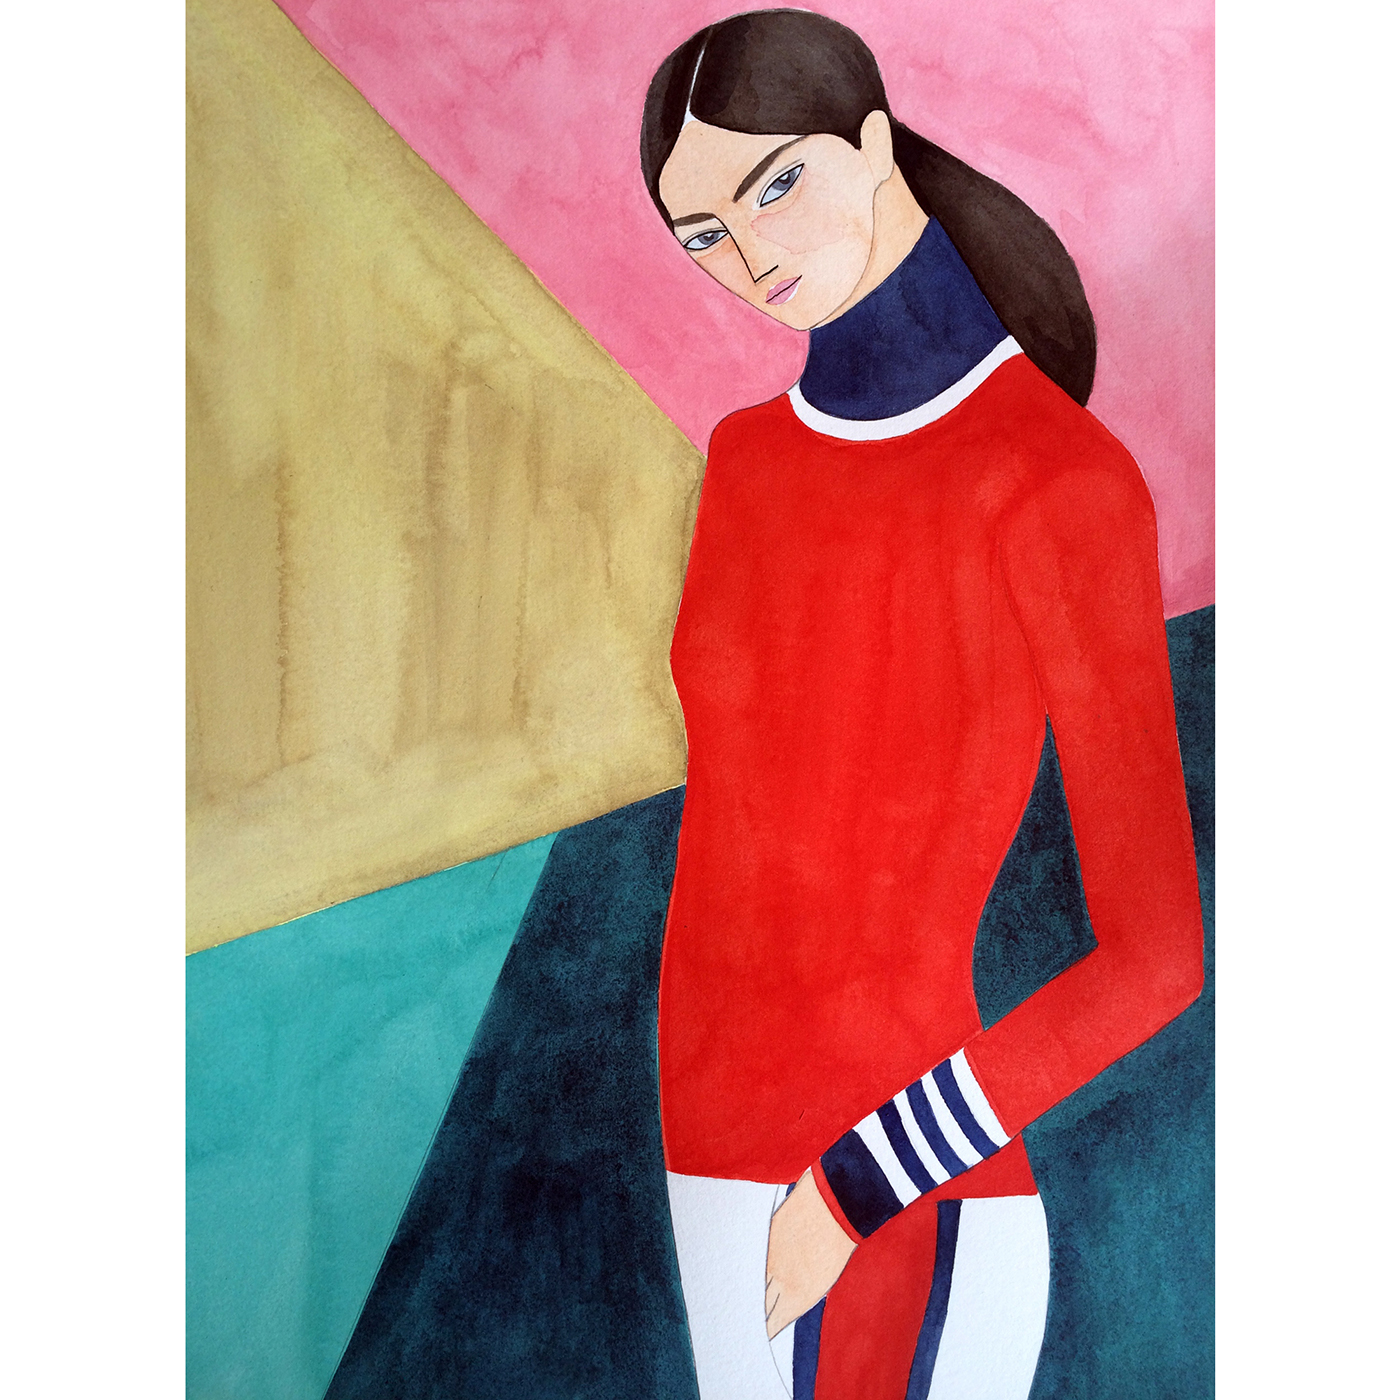 Kelly Beeman x  TORY BURCH — for  the launch of the athleisure line Tory Sport and pop-up store in Soho, NYC.   © Kelly Beeman